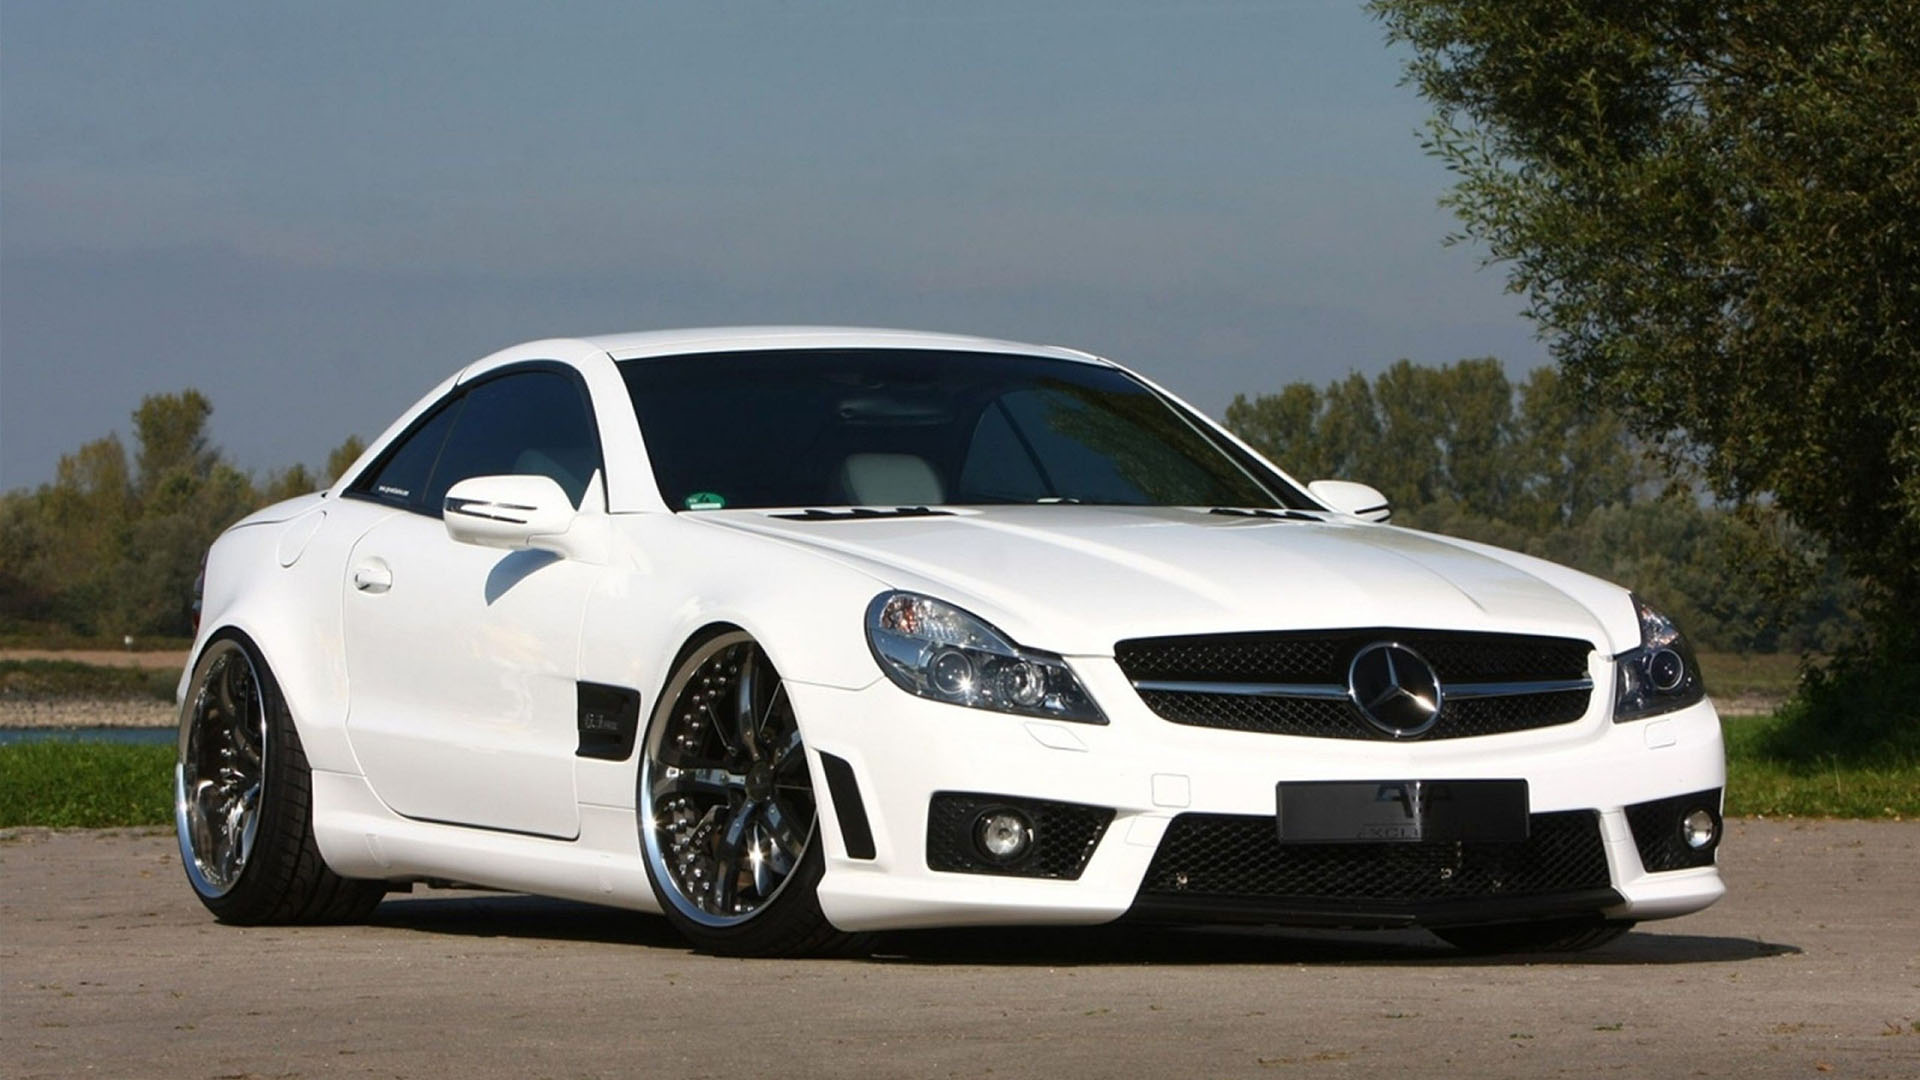 Free Photo White Mercedes Benz Car Automobile Automotive Car Free Download Jooinn